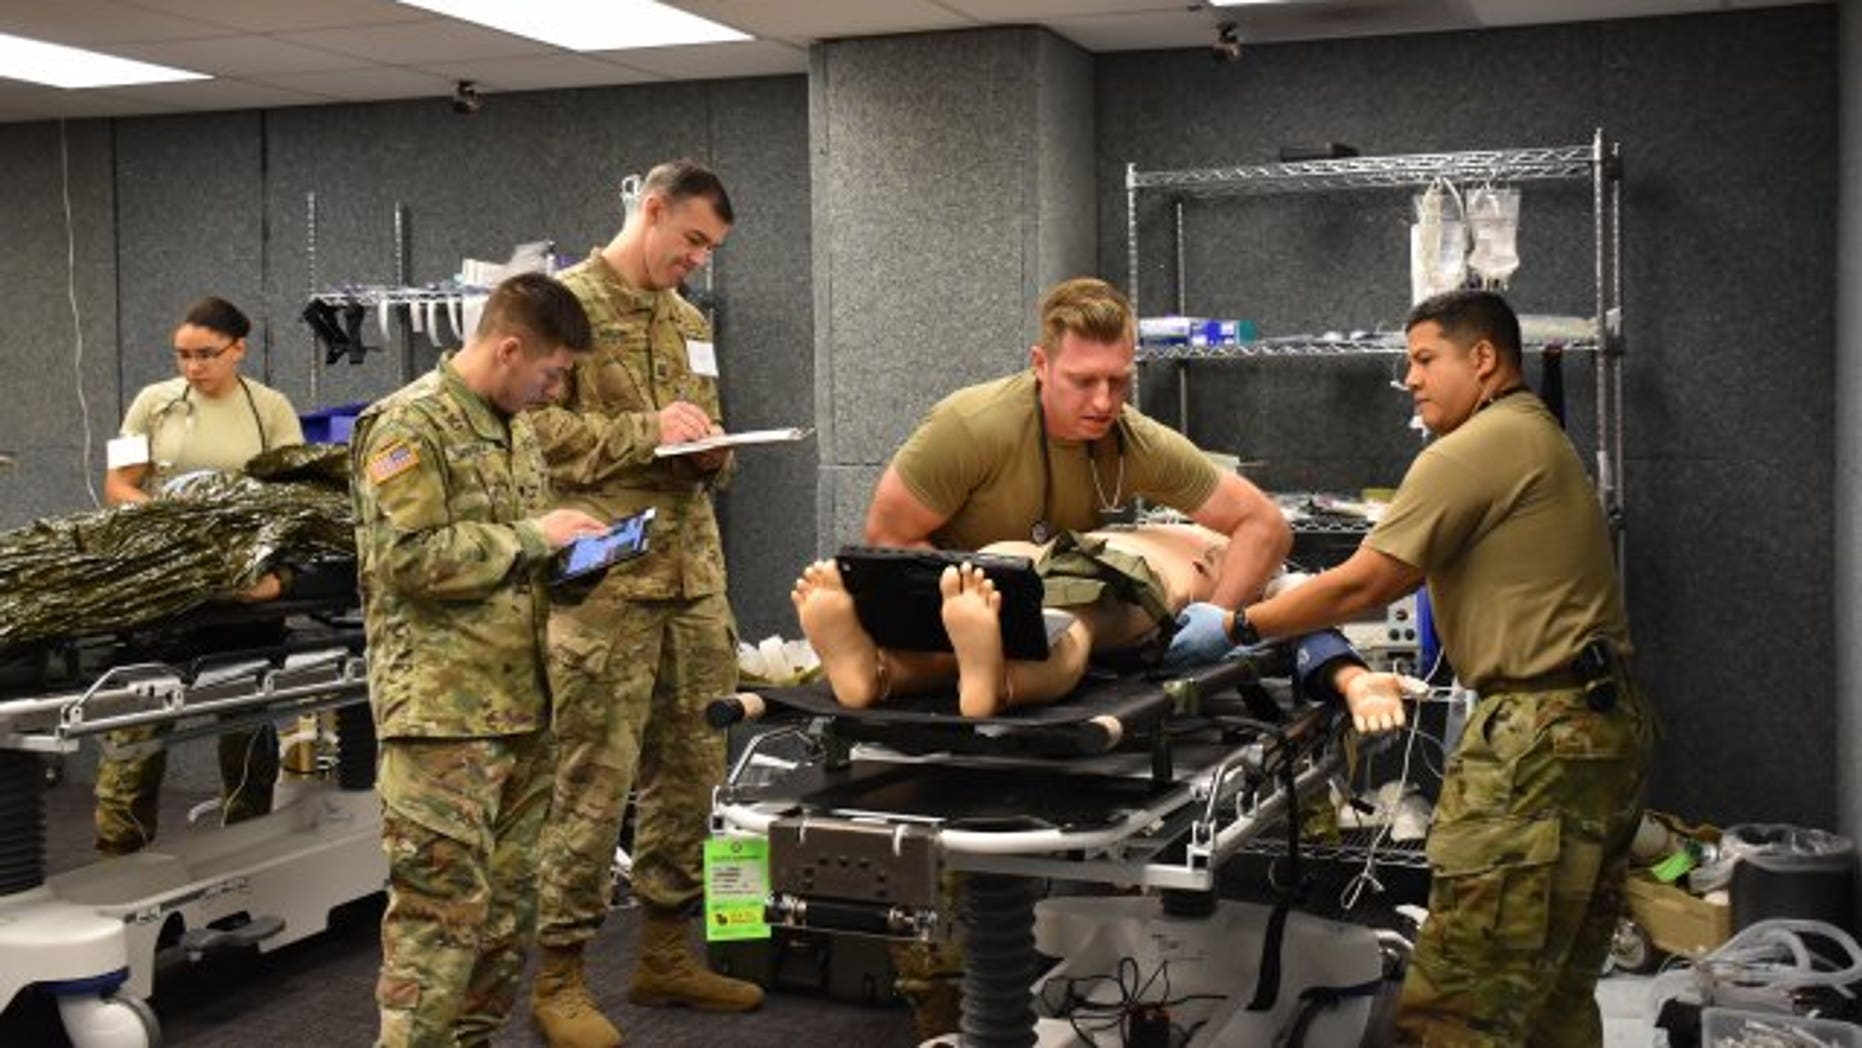 Army Cpt. Sean McCoy, 541st Forward Surgical Team ER physician, conducted patient evaluations on each injured soldier during training .